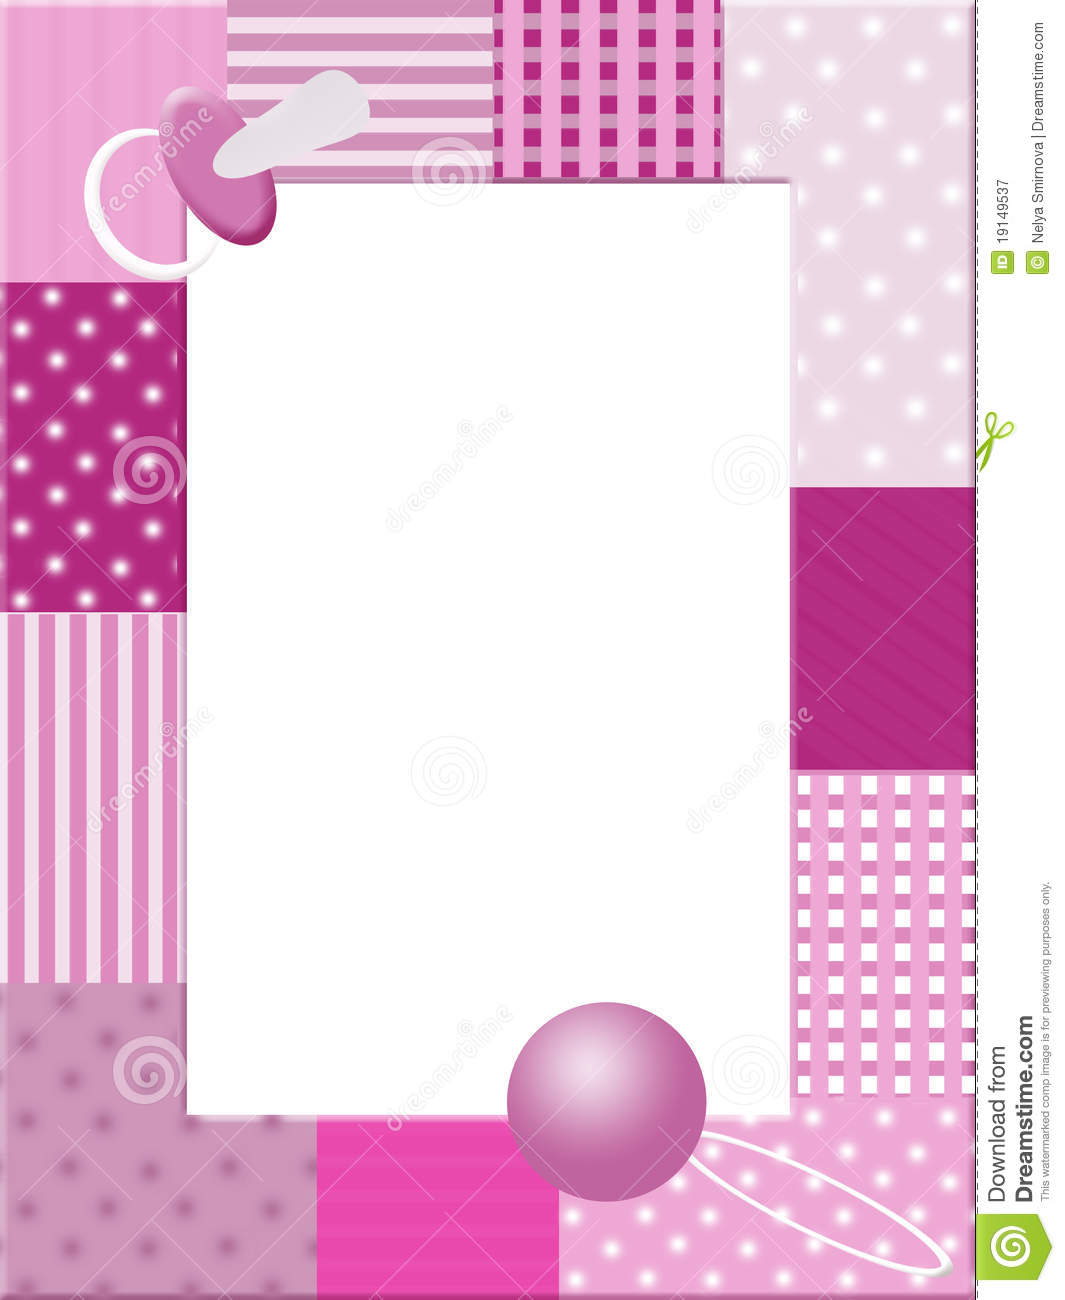 Cuadros Para Fotos Multiples Pink Babies Photo Frame Royalty Free Stock Photography